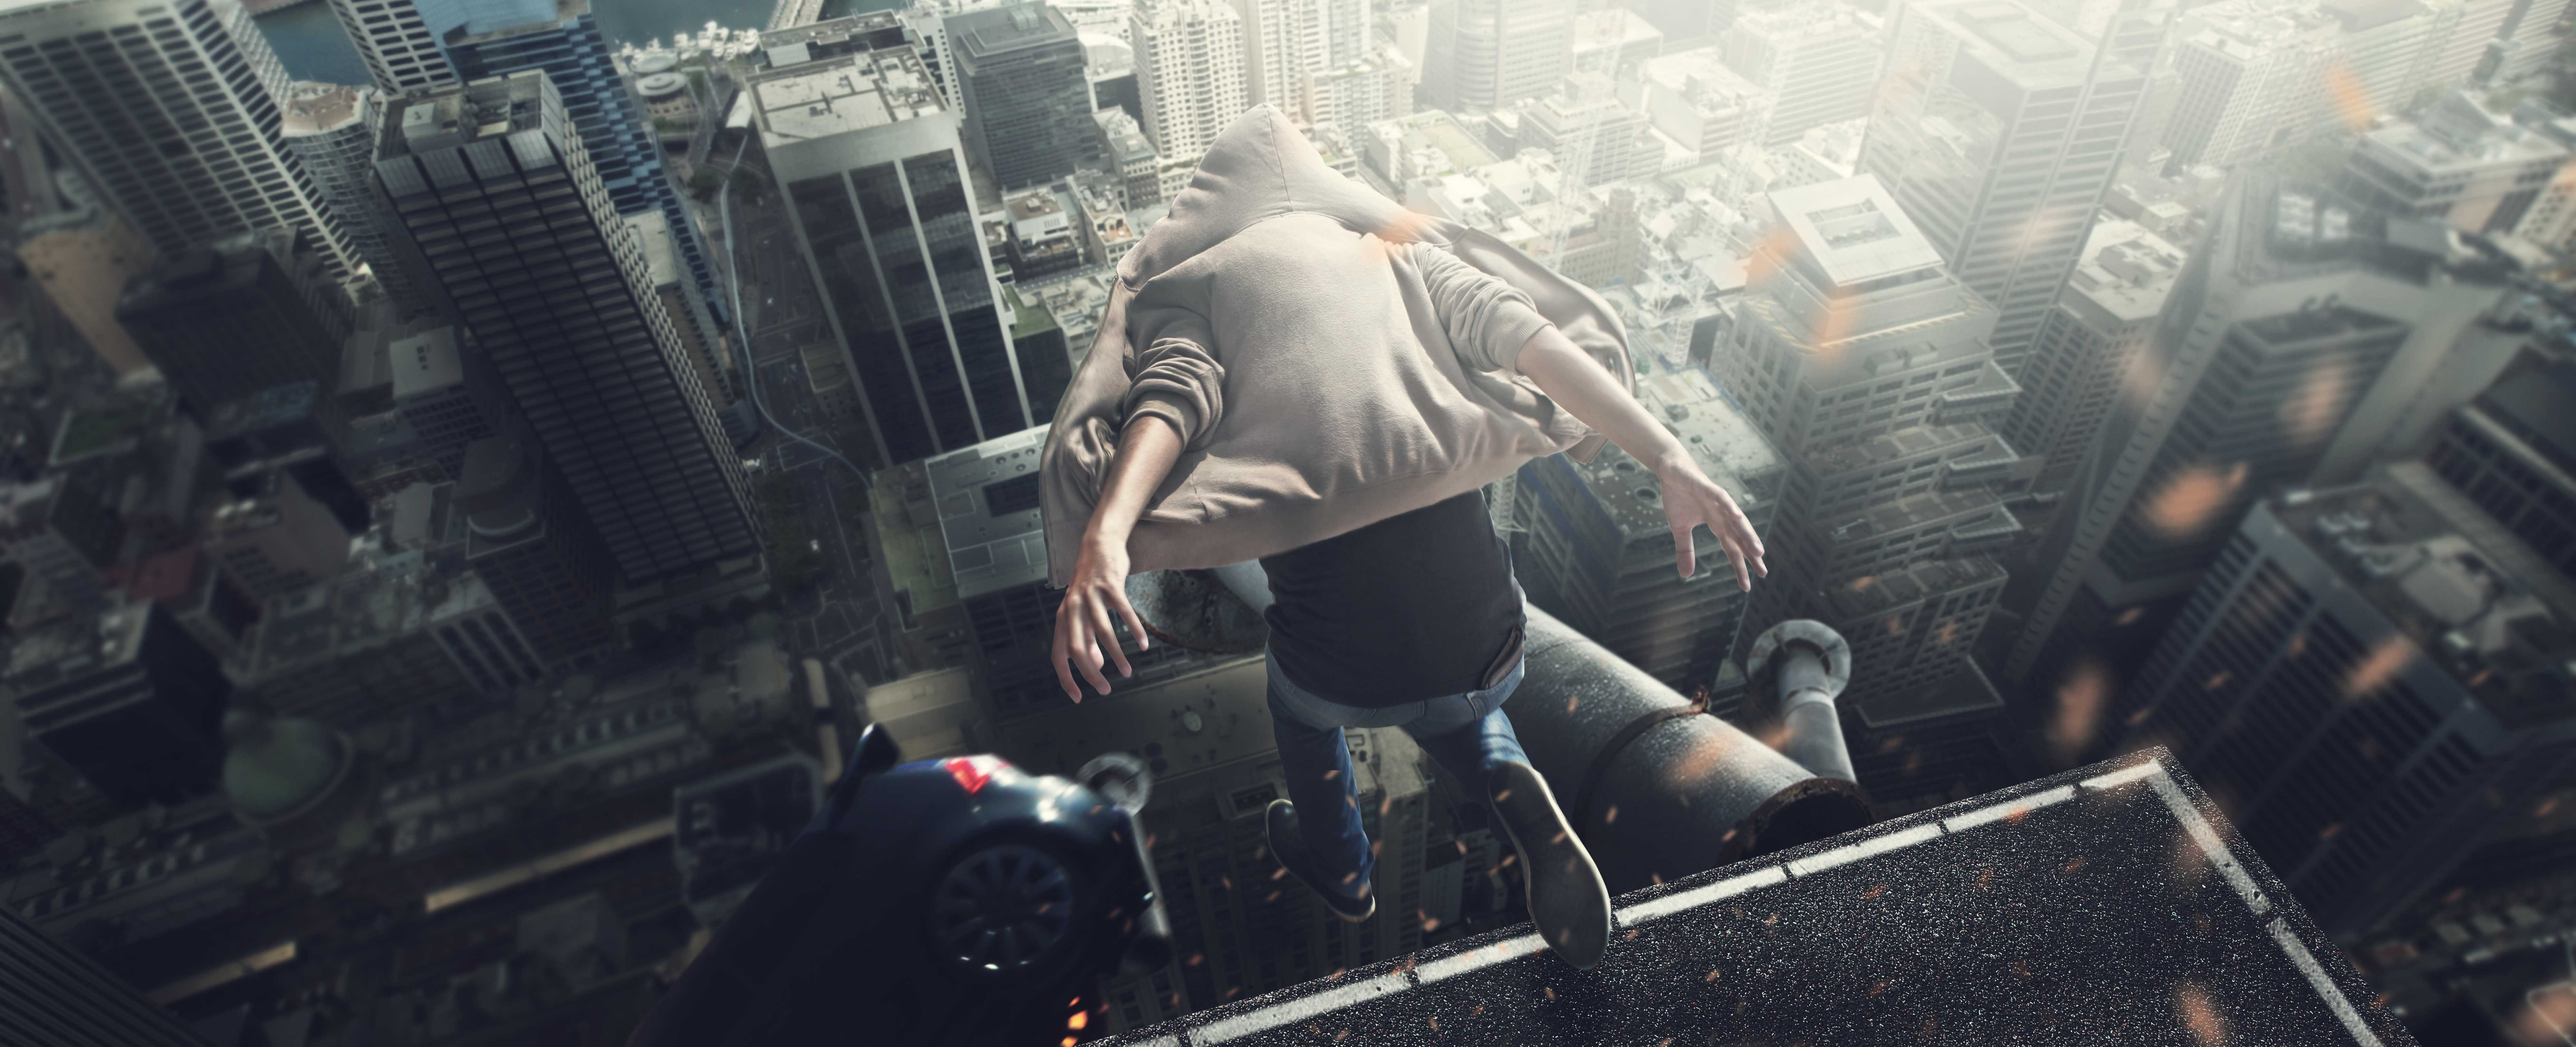 building falling cityscape jumping wallpaper 8000x3251 969903